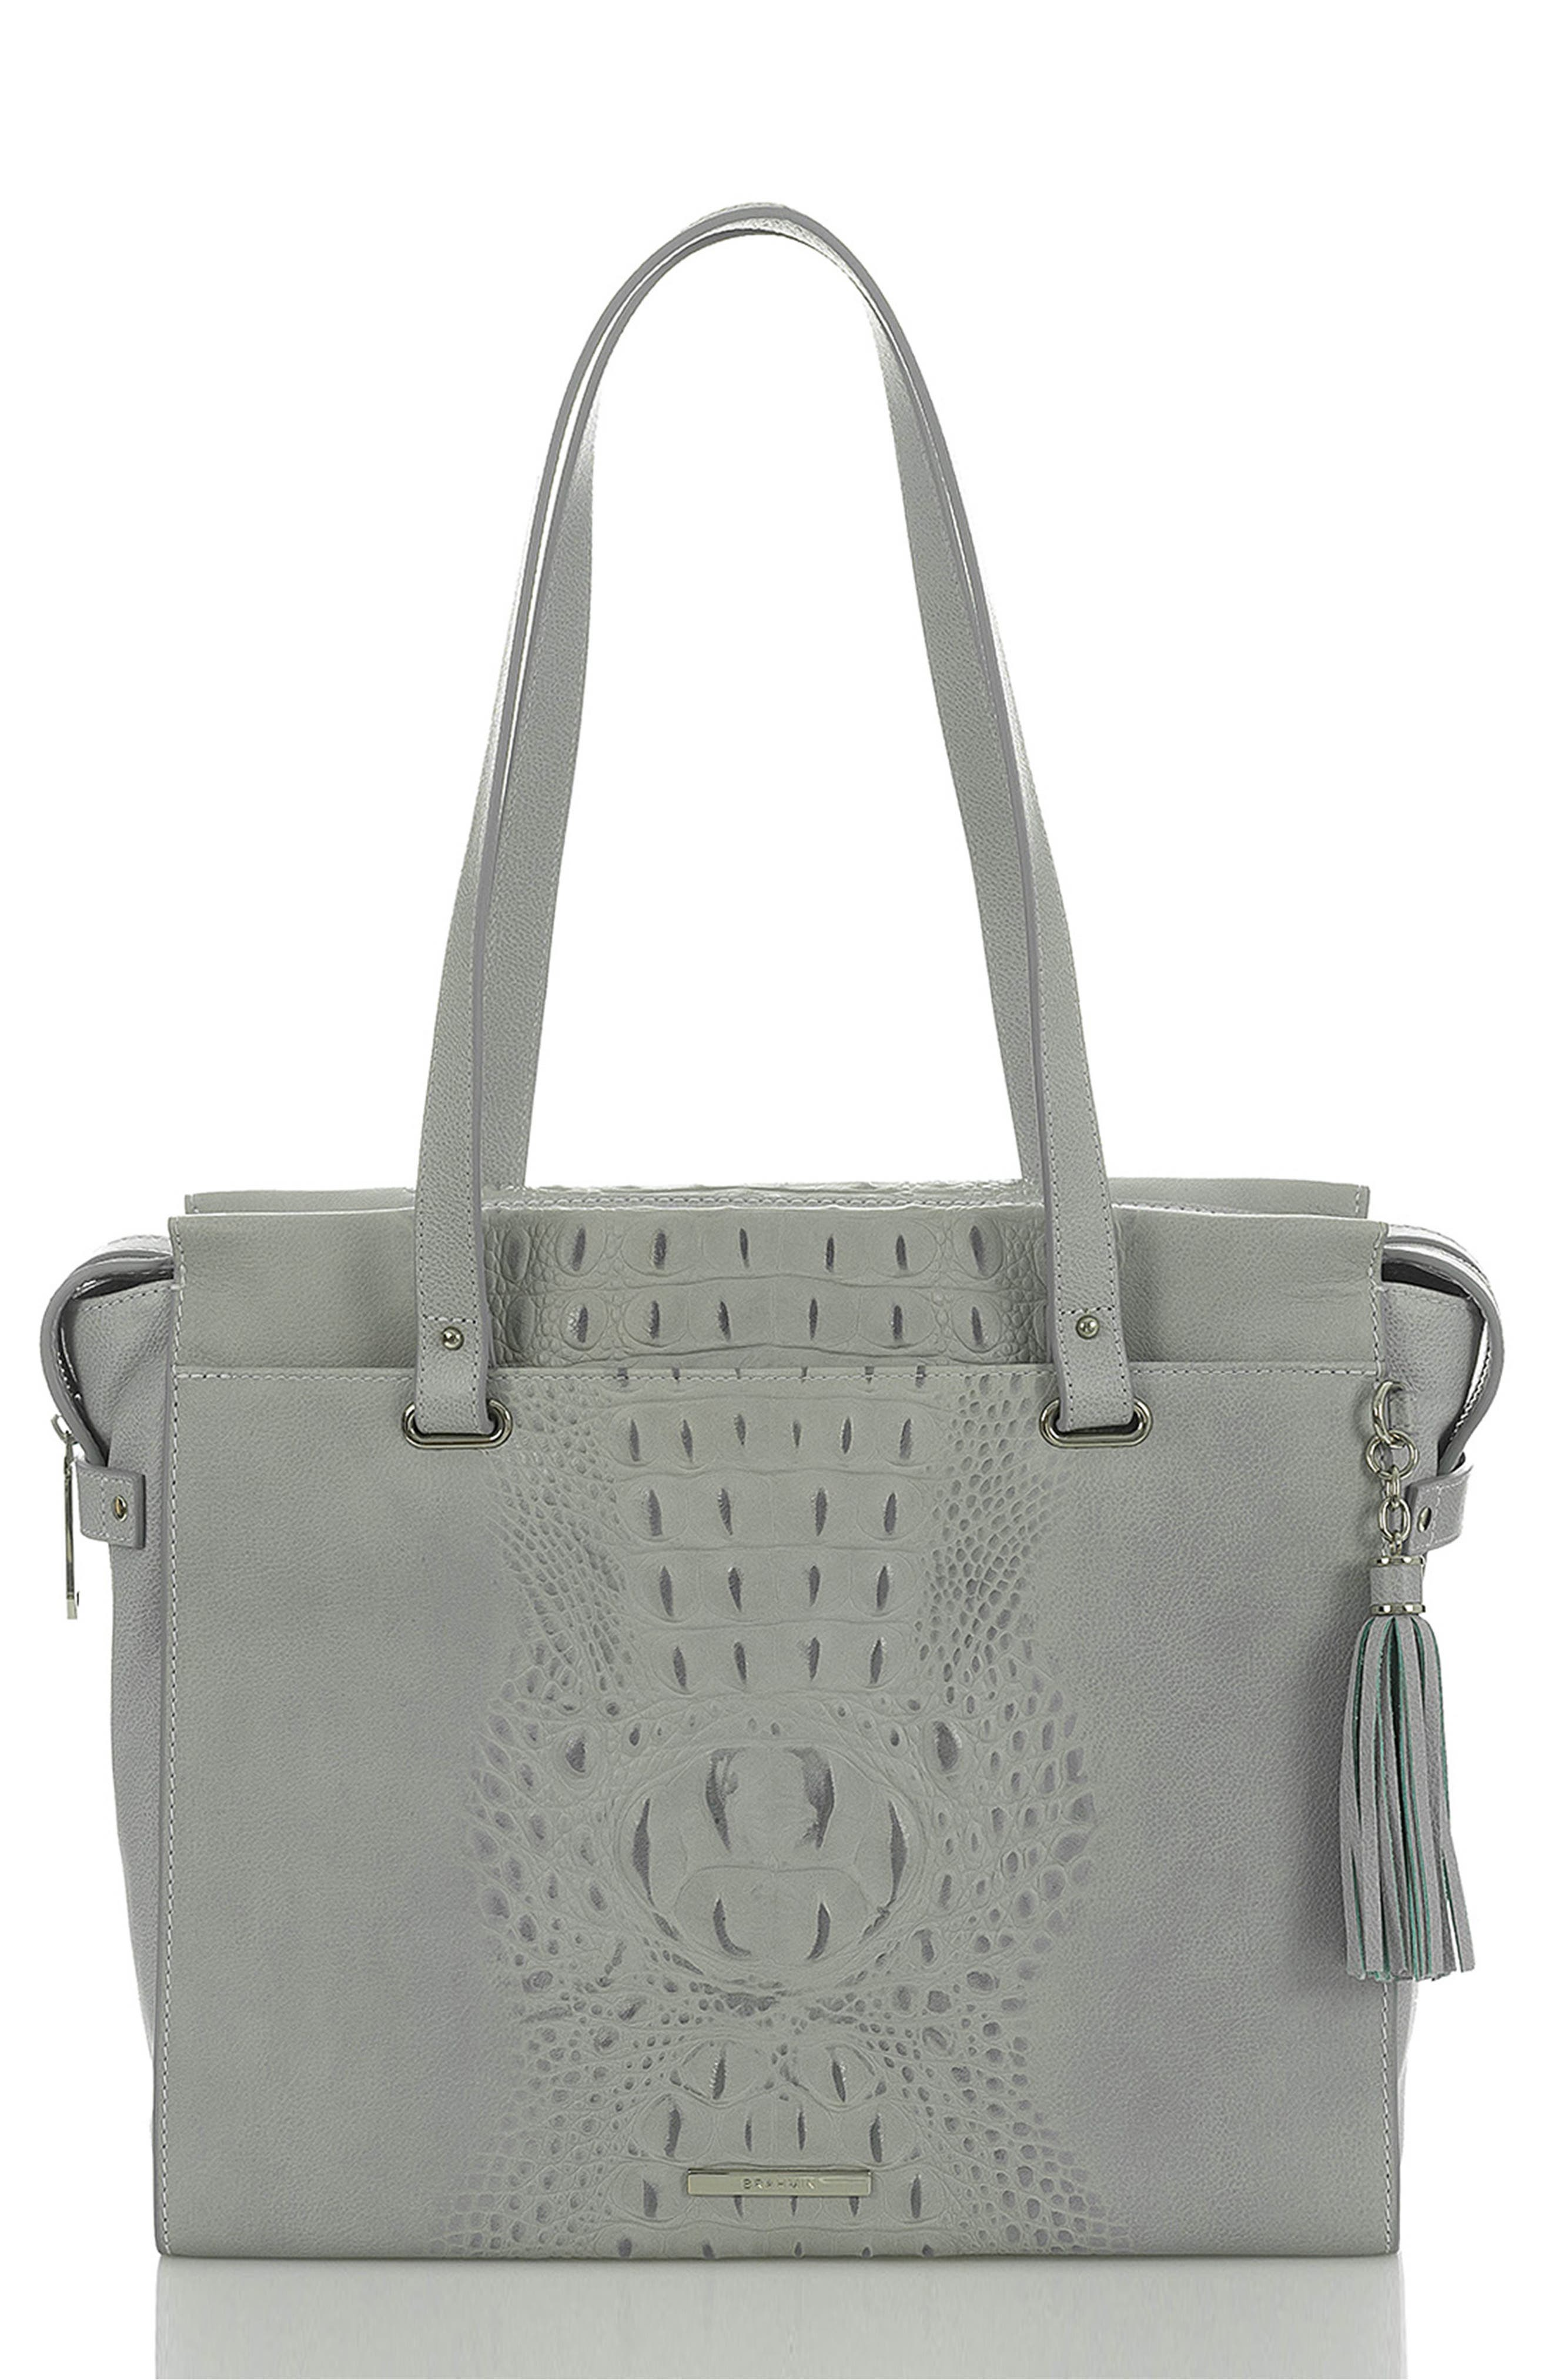 BRAHMIN, Medium Emily Leather Tote, Main thumbnail 1, color, OCEAN